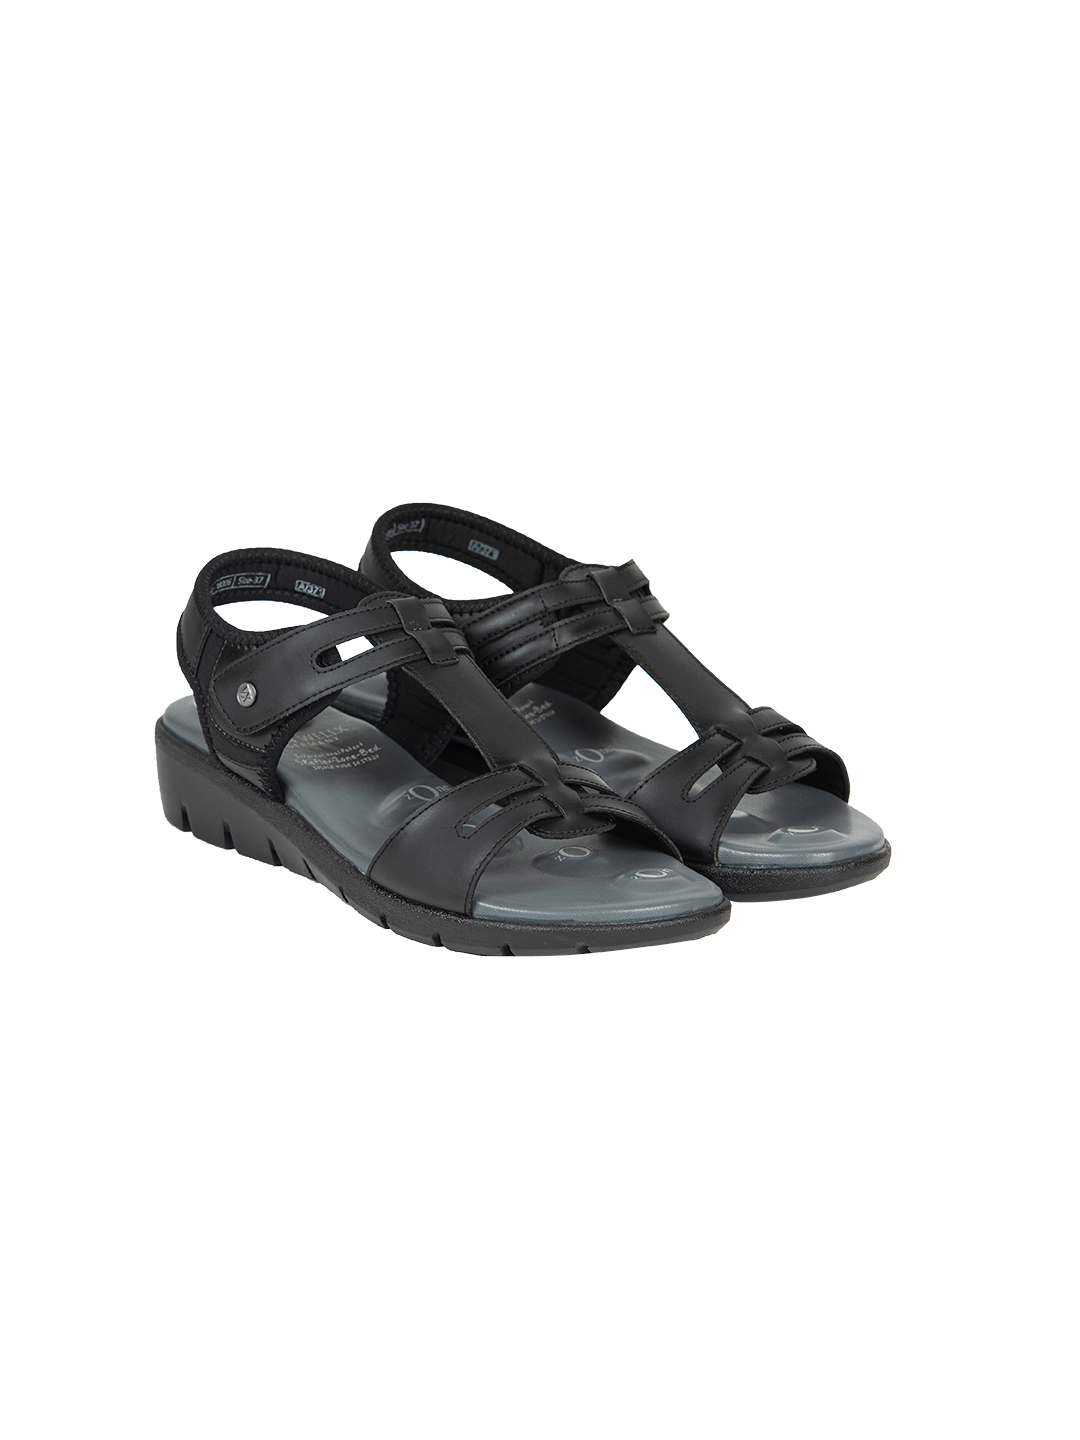 Buy Von Wellx Germany Comfort Nova Black Sandals Online in Agra